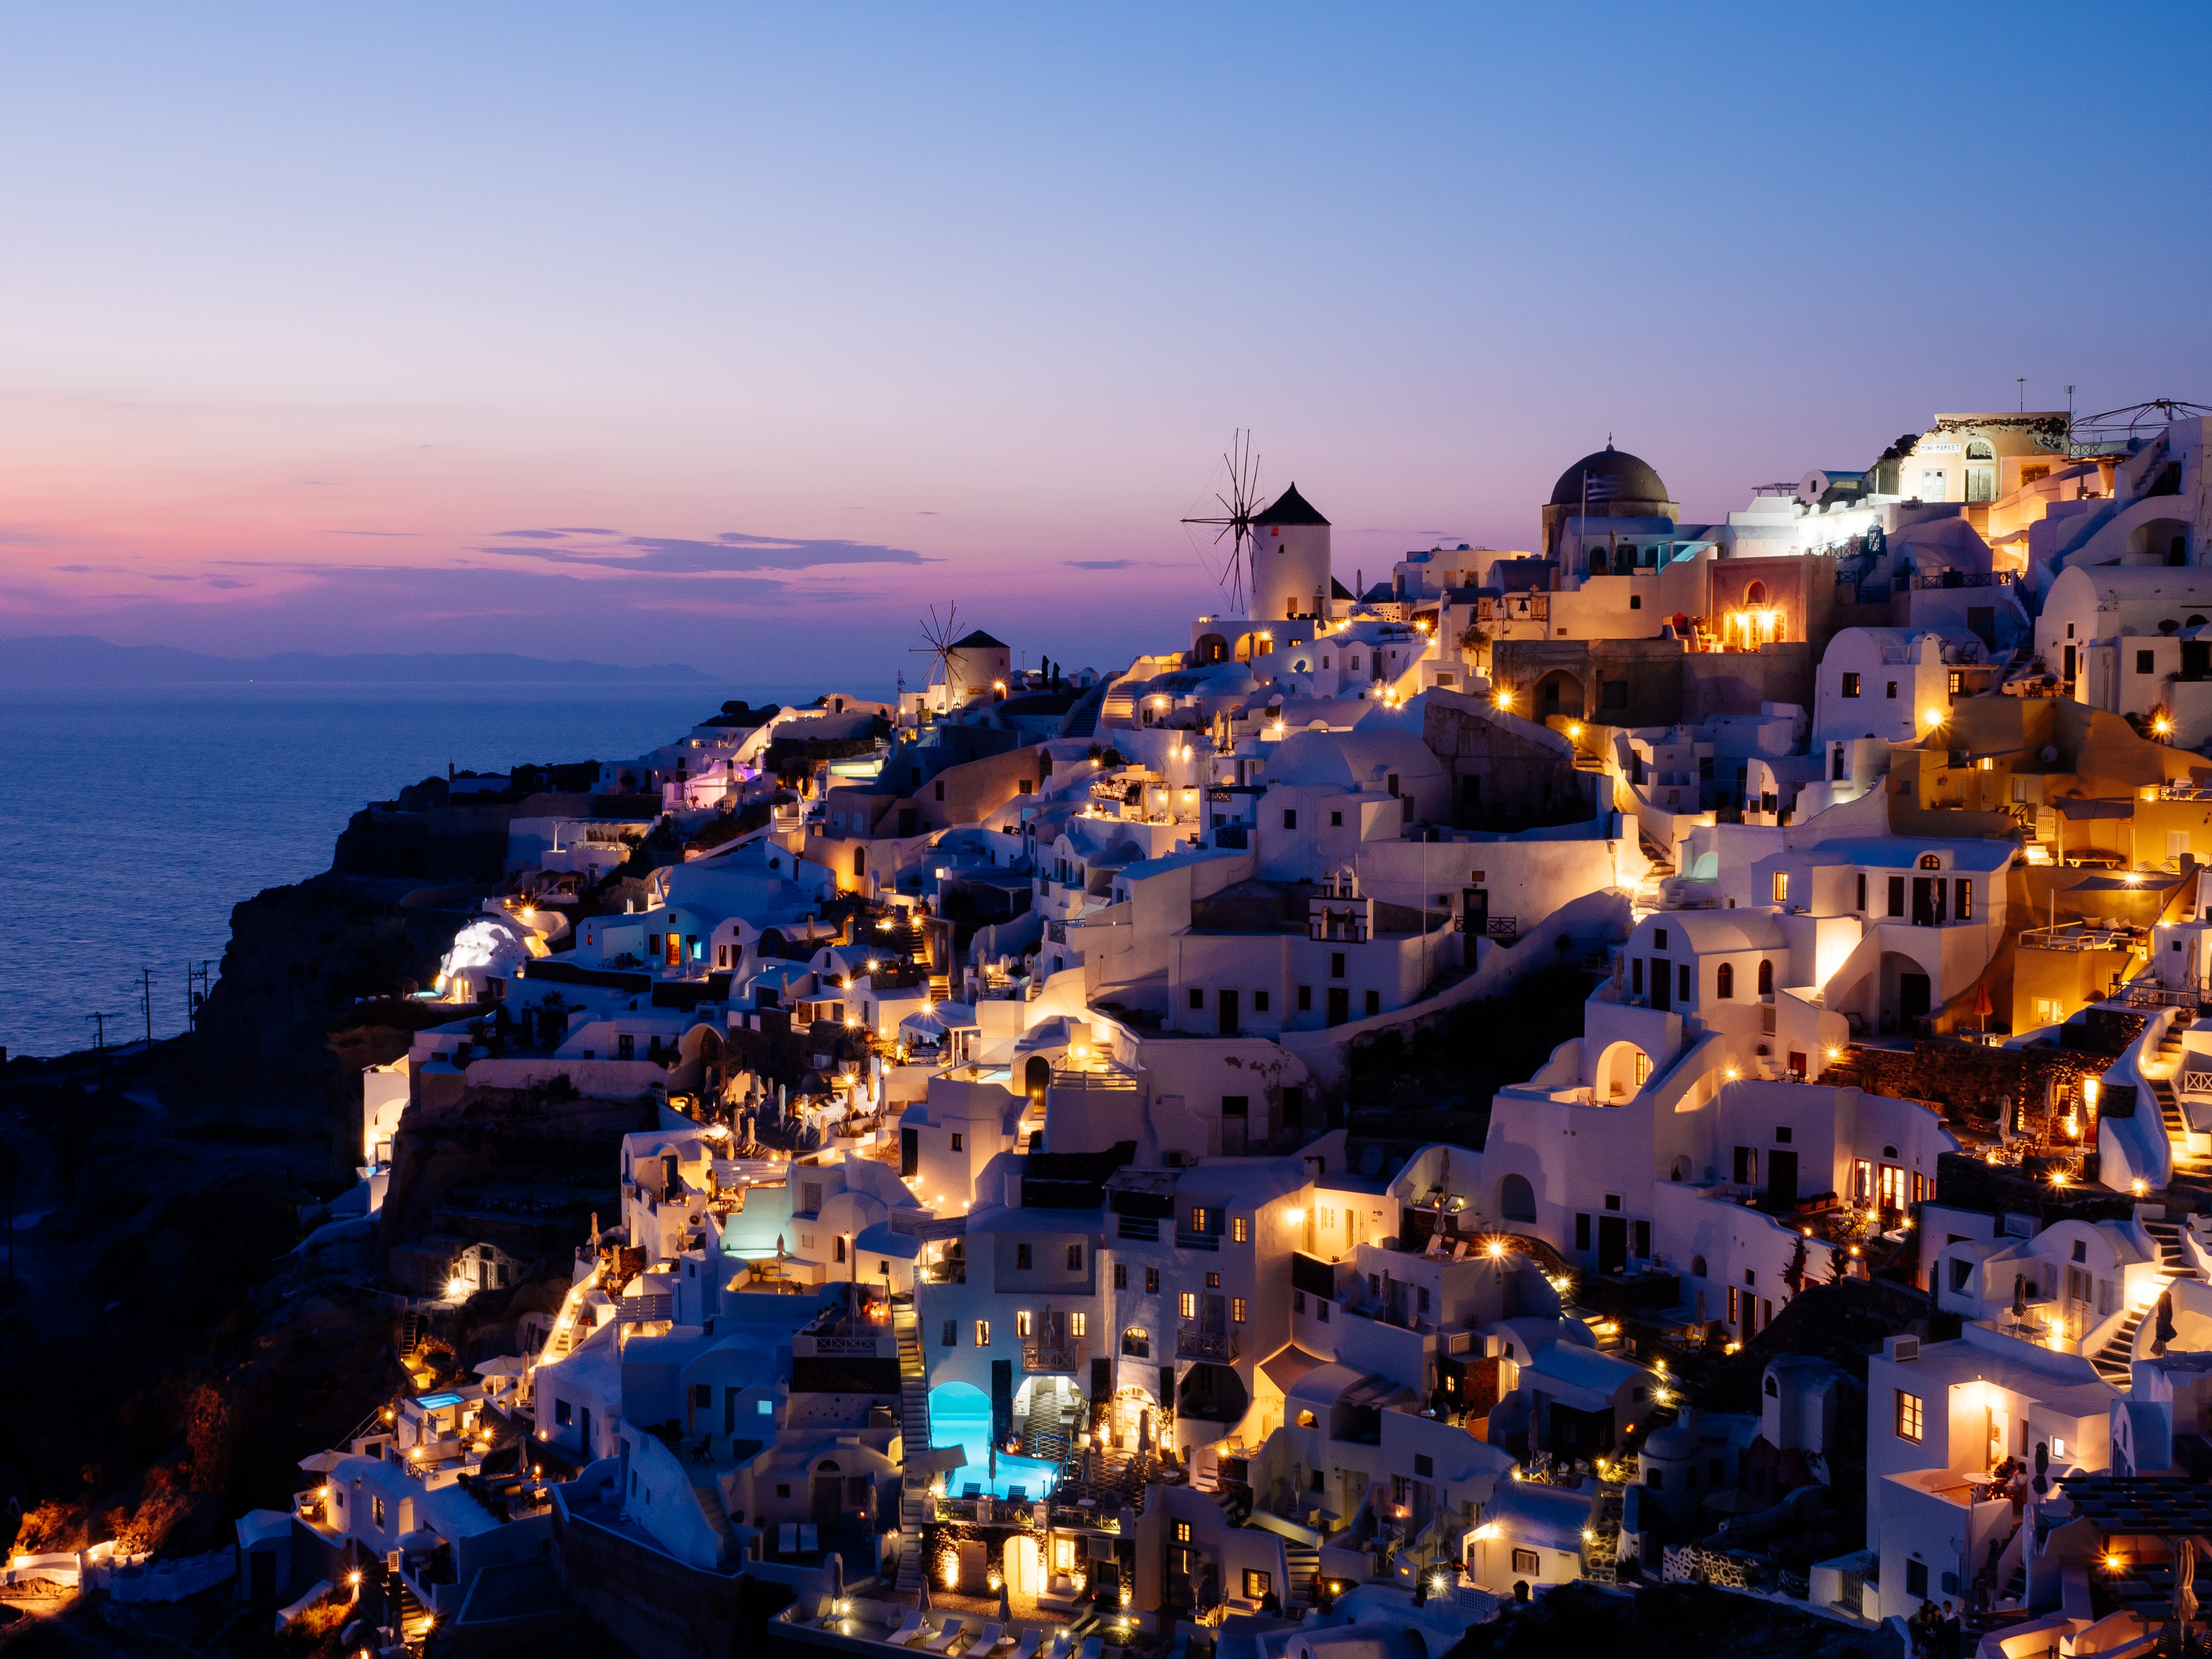 Santorini during sunset